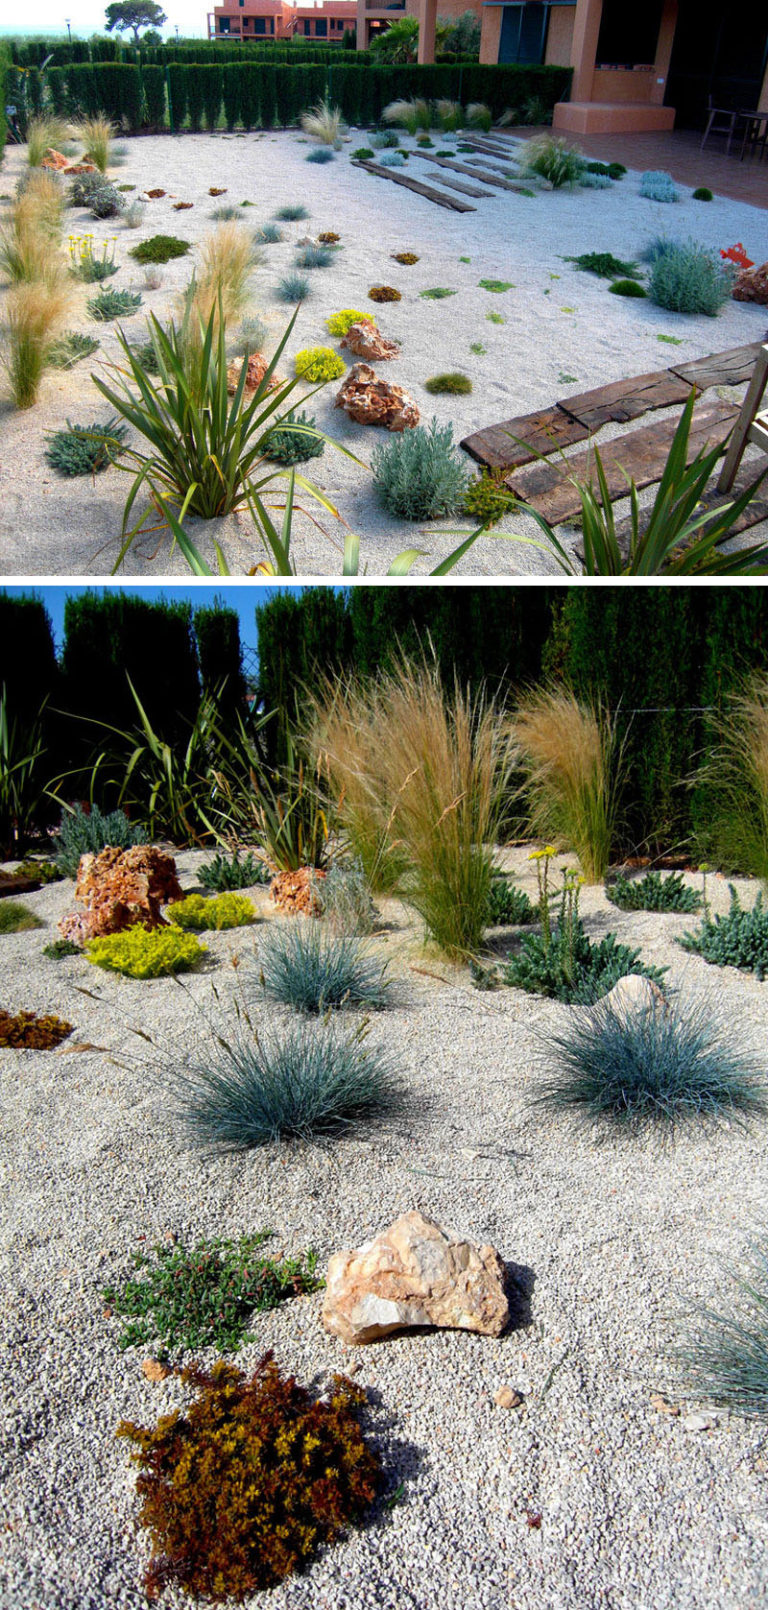 11 Inspirational Rock Gardens To Get You Planning Your Garden // Although this backyard looks a little sparse right now, once the plants grow a bit, there will be less gravel and more plant life.